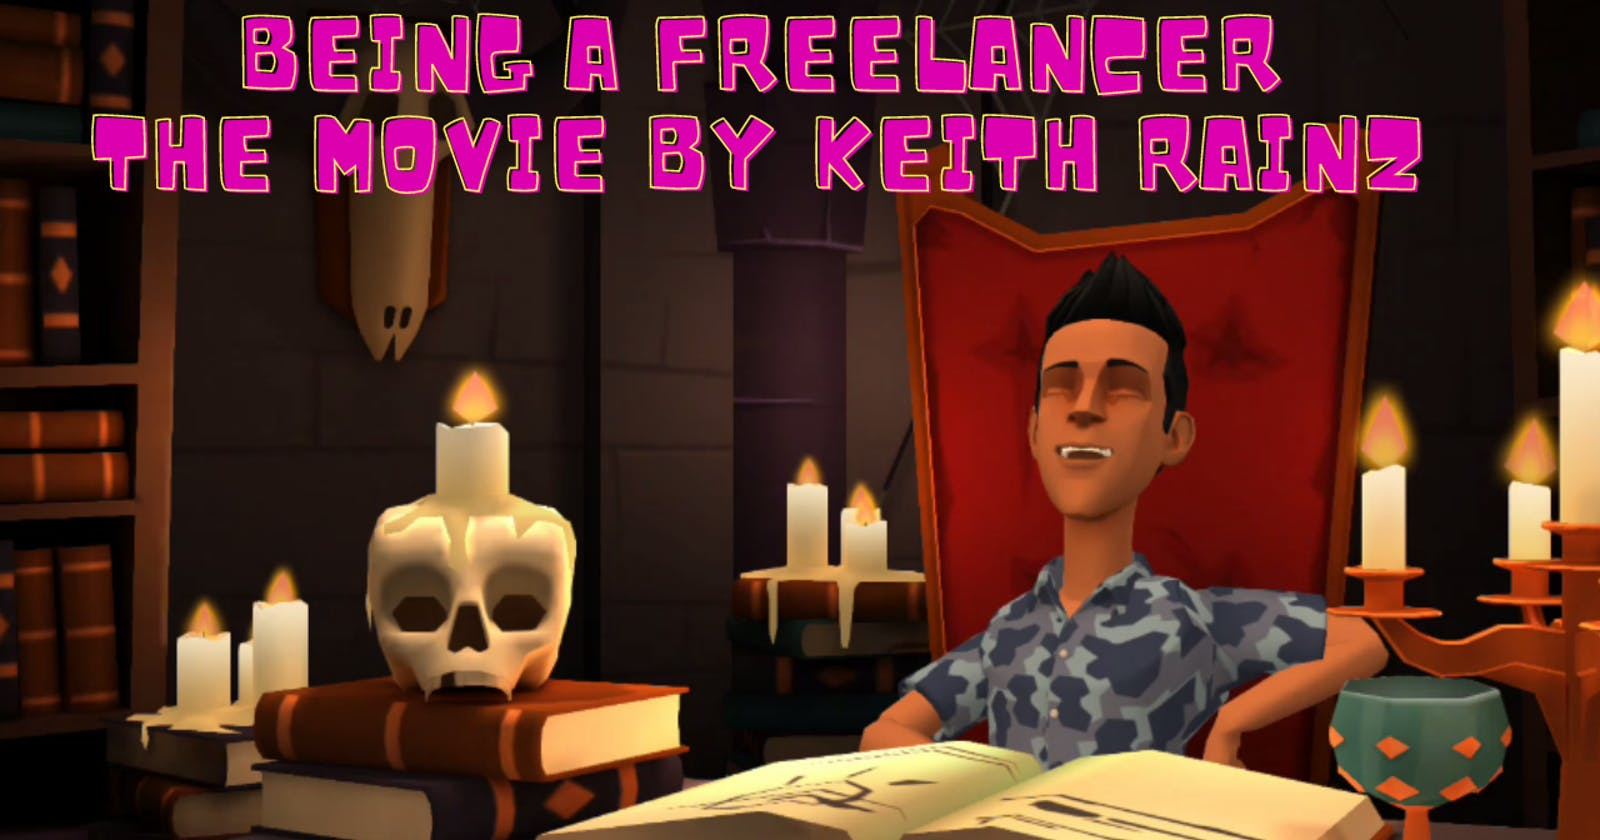 My experience with being a freelancer